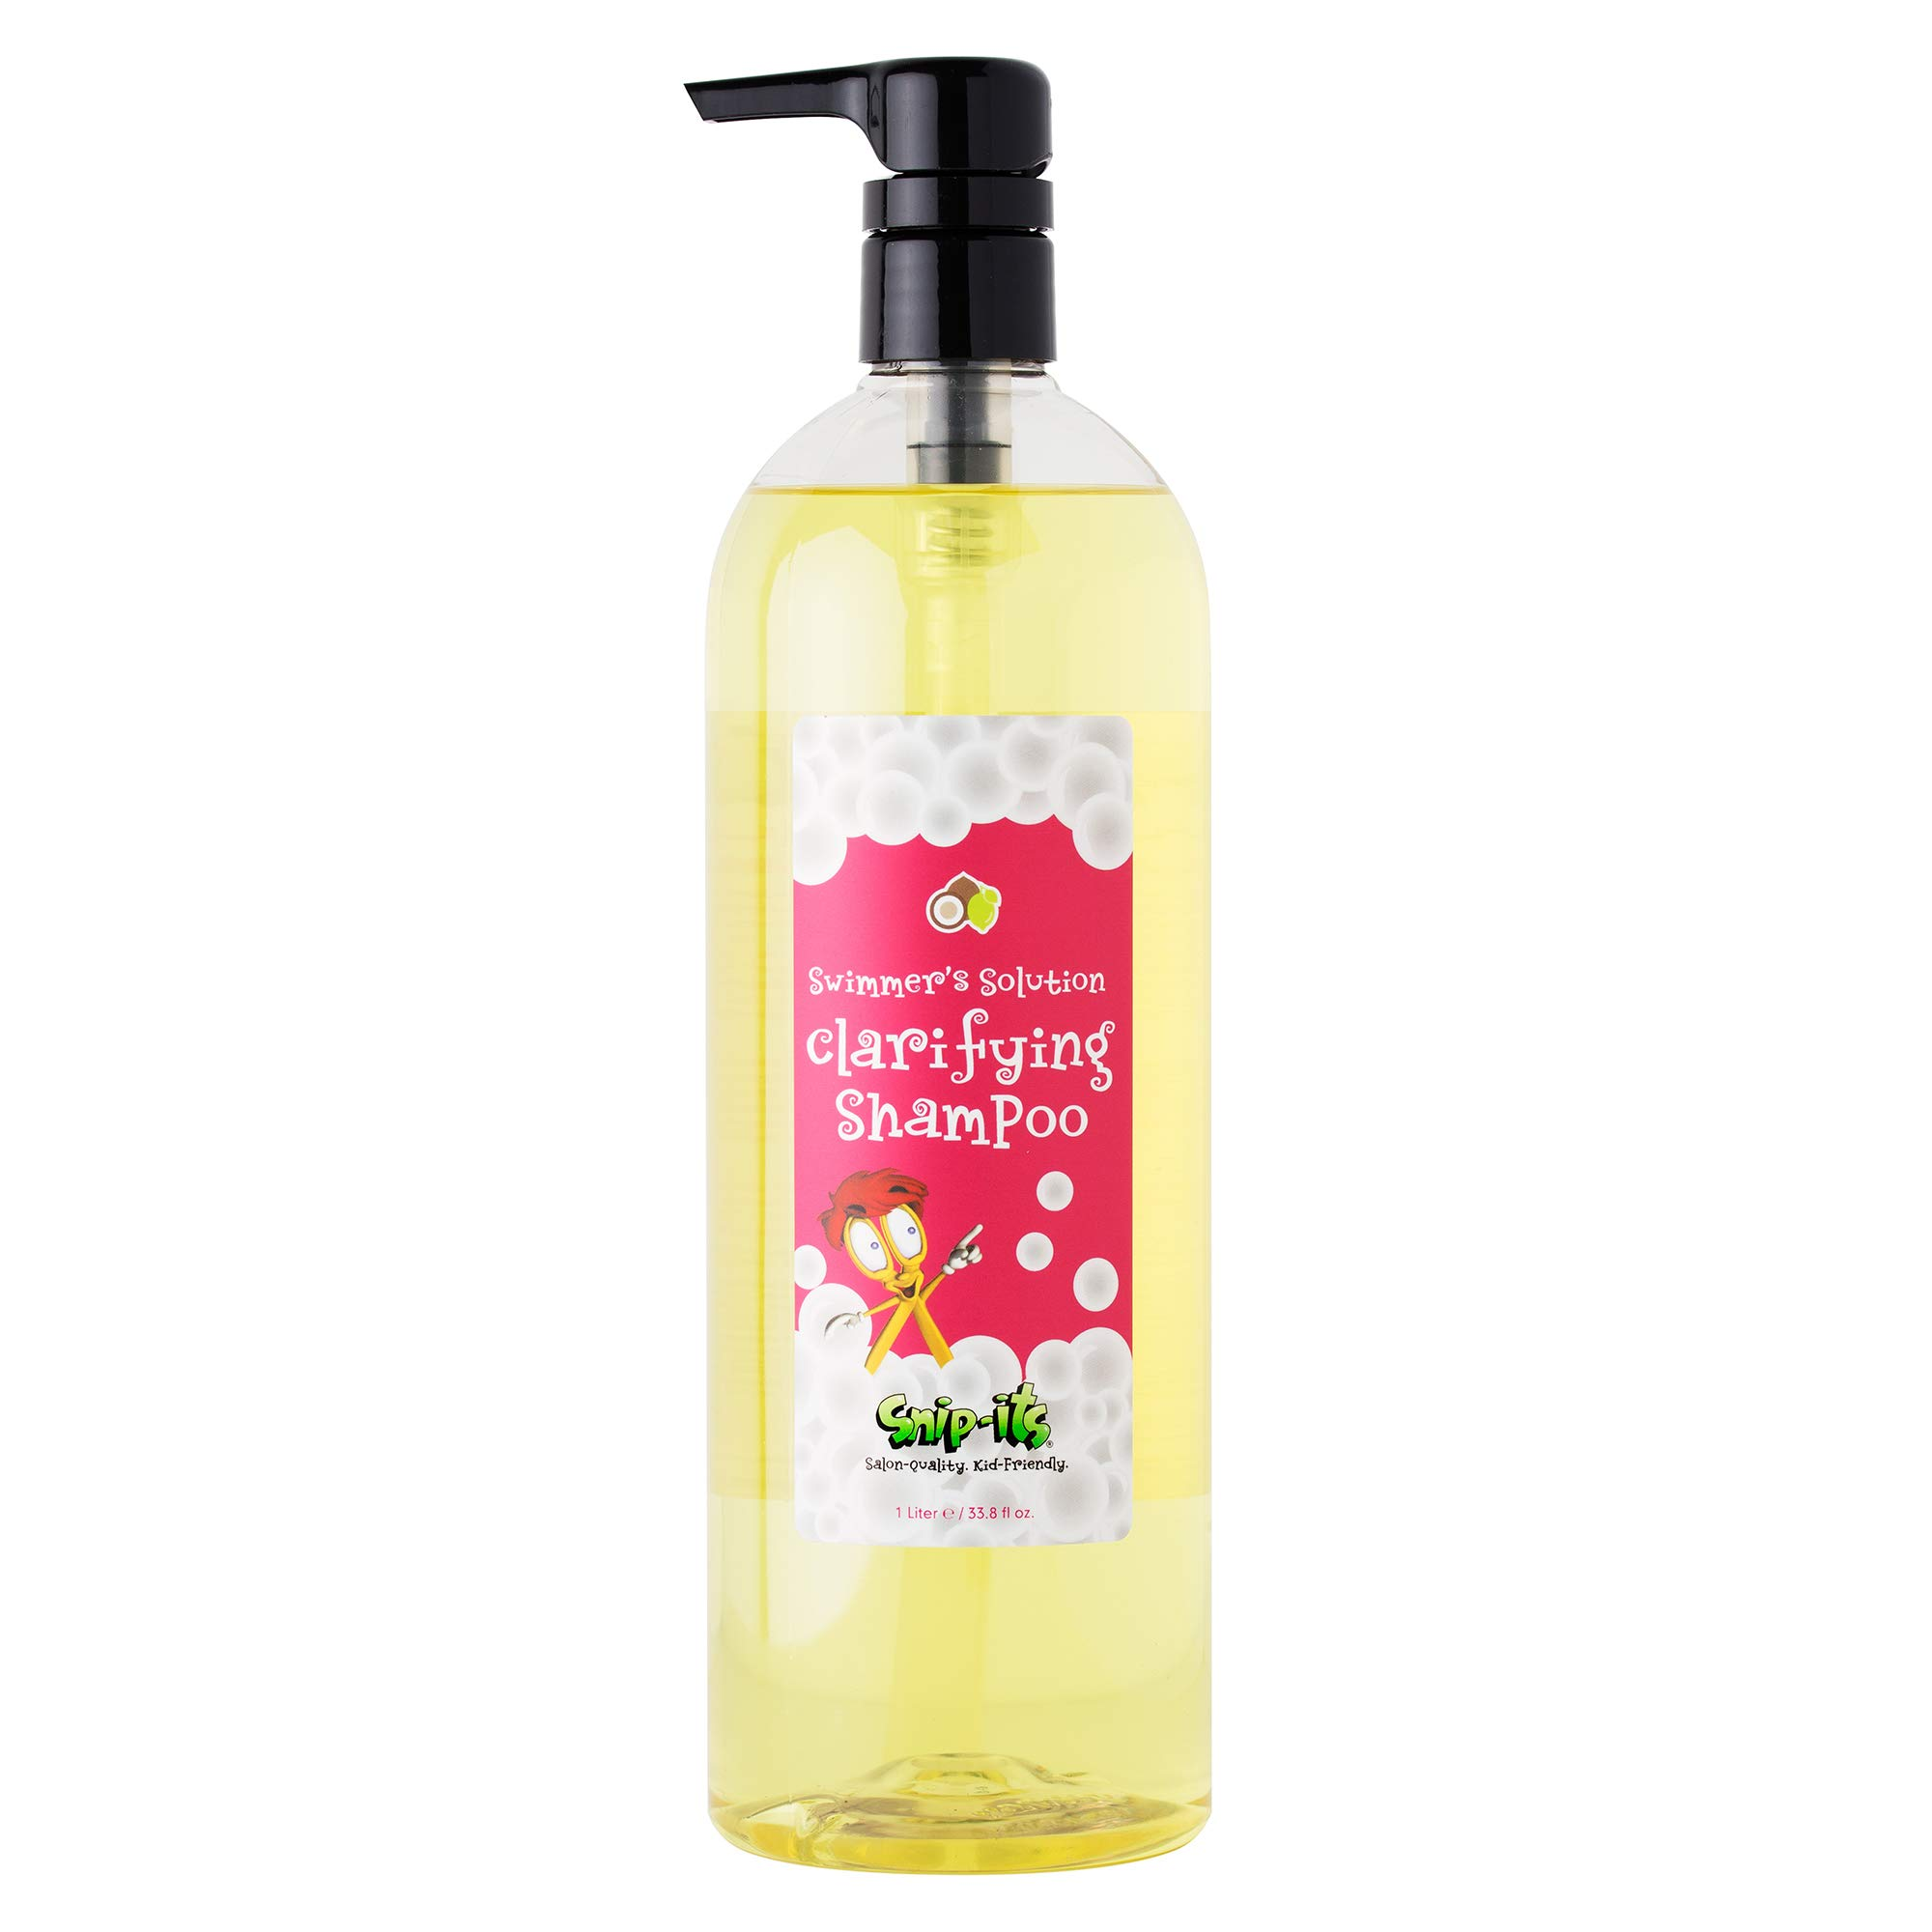 Snip-its Natural Swim Shampoo for Kids 1 Liter Pump-Top | Tear Free Shampoo for Kids - Shampoo for Chlorine Removal | Natural Swimmers Kids Shampoo Made in the USA | Salon Quality Kid Friendly by Snip-its